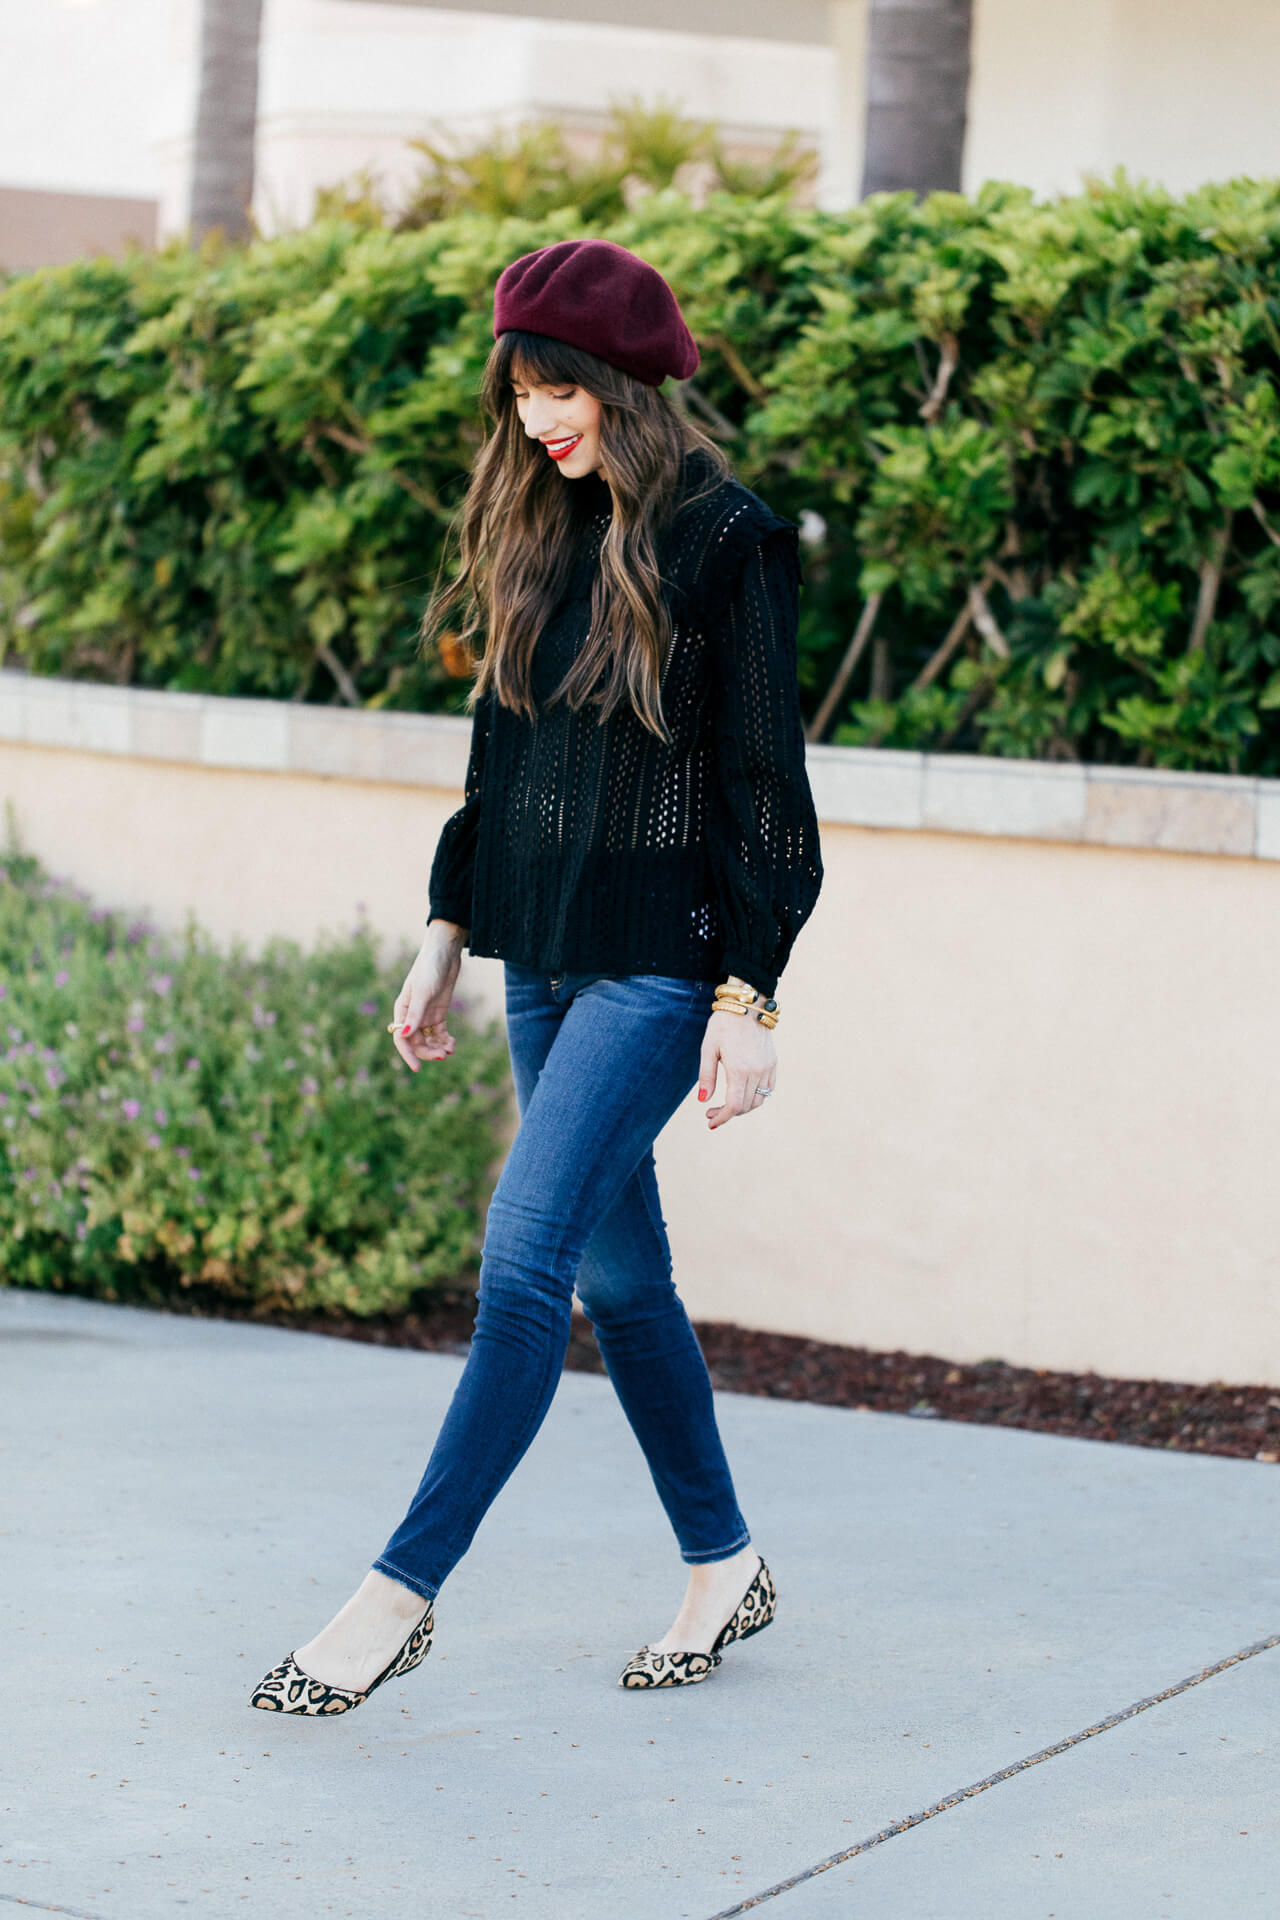 Romantic fall style outfit inspiration! | M Loves M @marmar